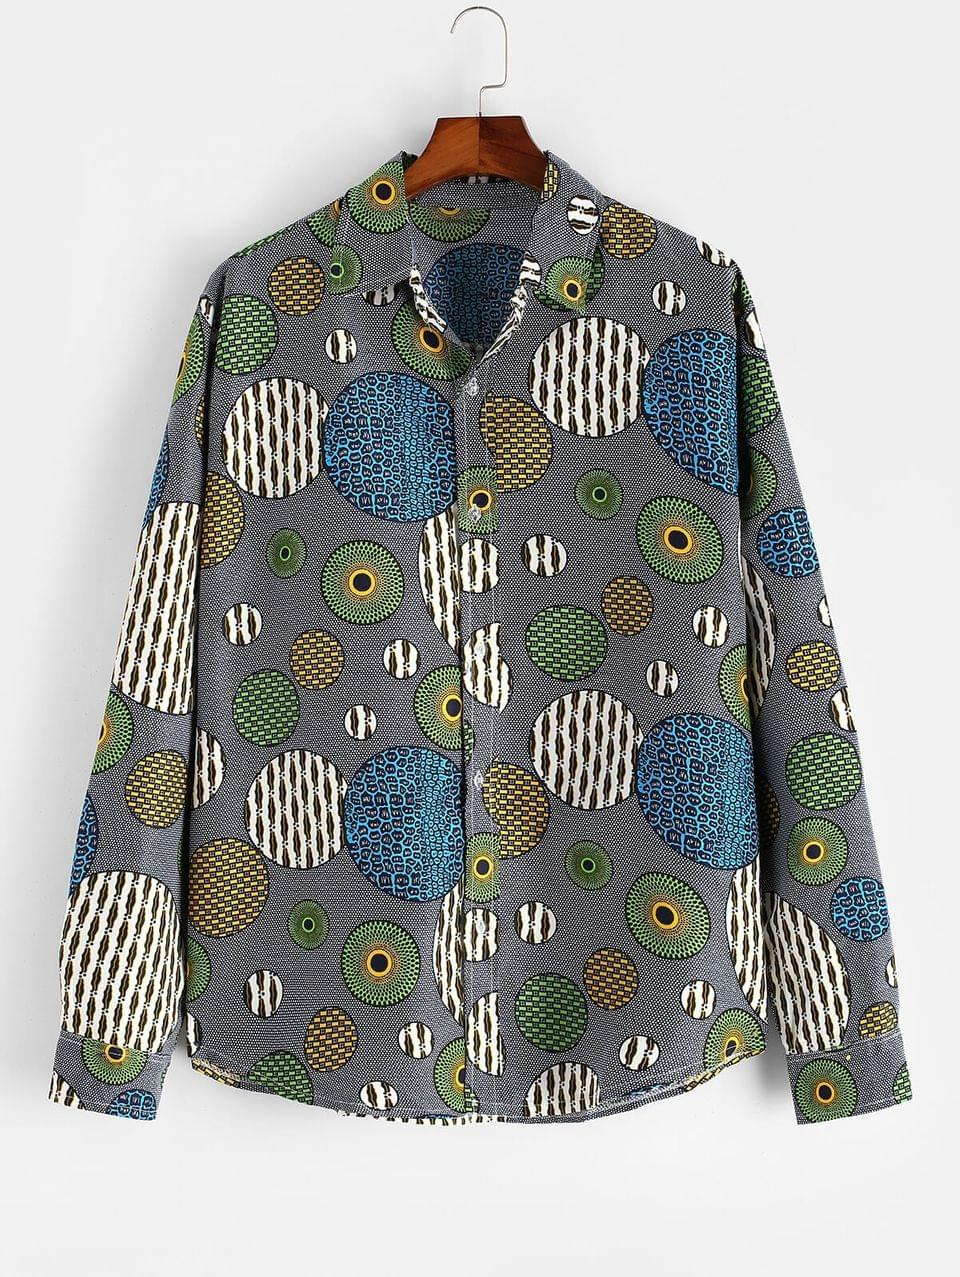 Men's Abstract Round Graphic Button Up Ethnic Shirt - Multi 3xl